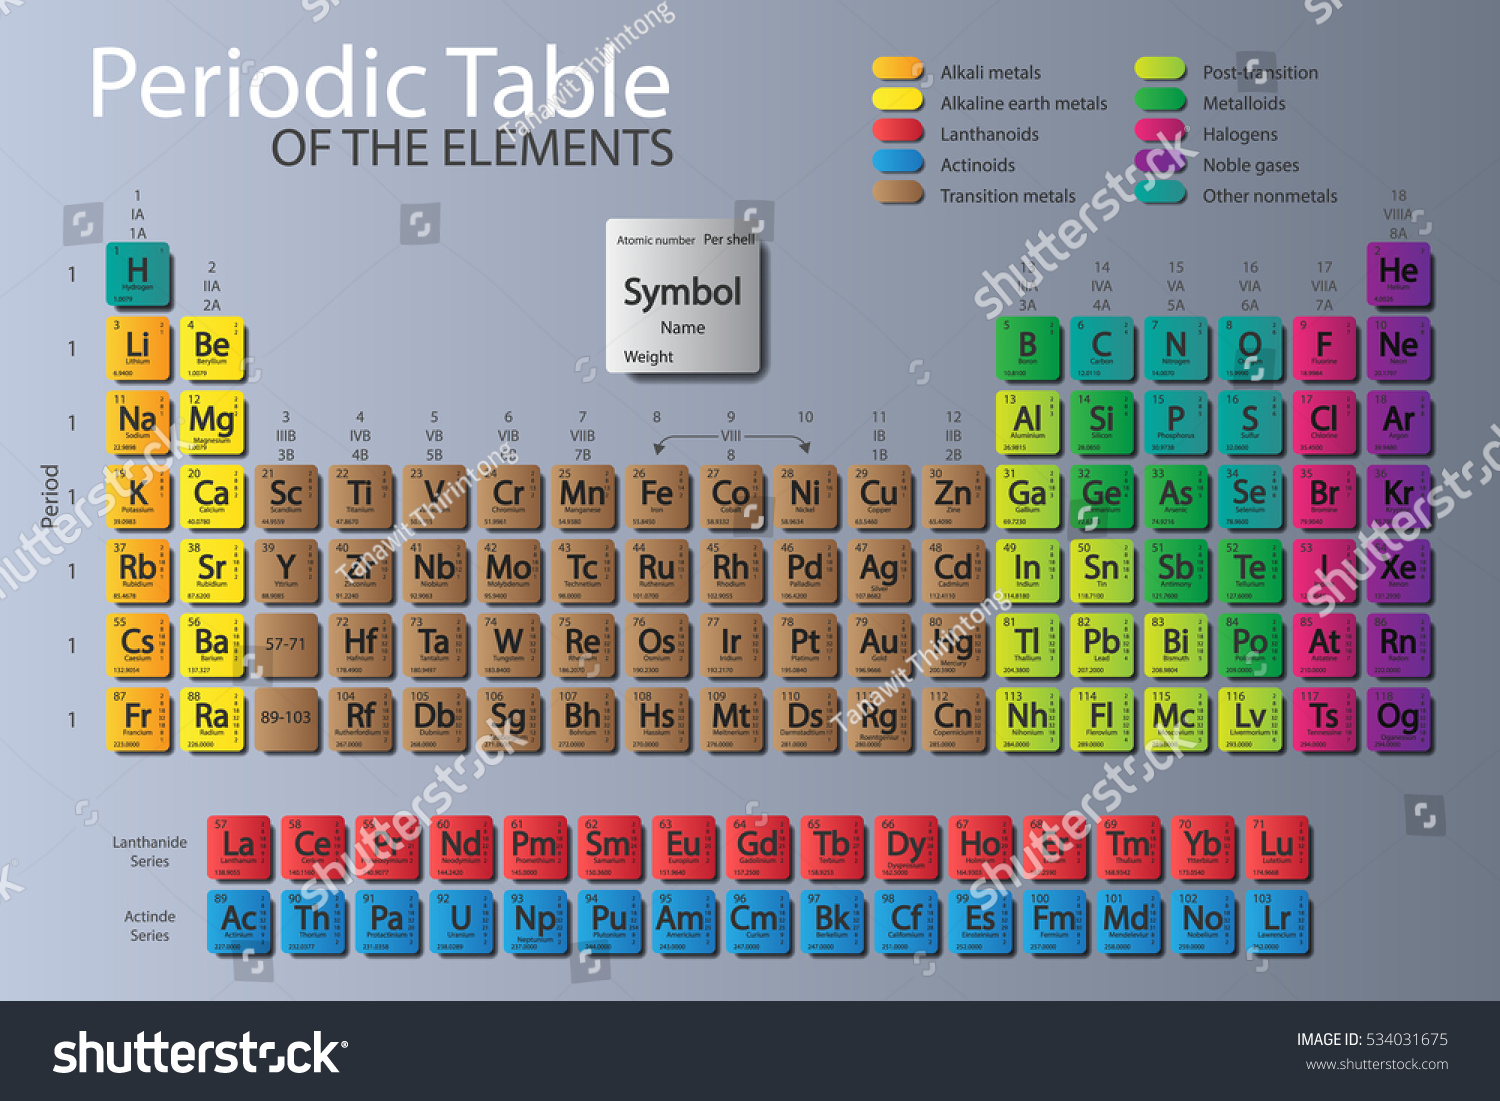 Periodic table elements color delimitation new stock vector periodic table of elements with color delimitatione new periodic is updated nihonium moscovium gamestrikefo Images